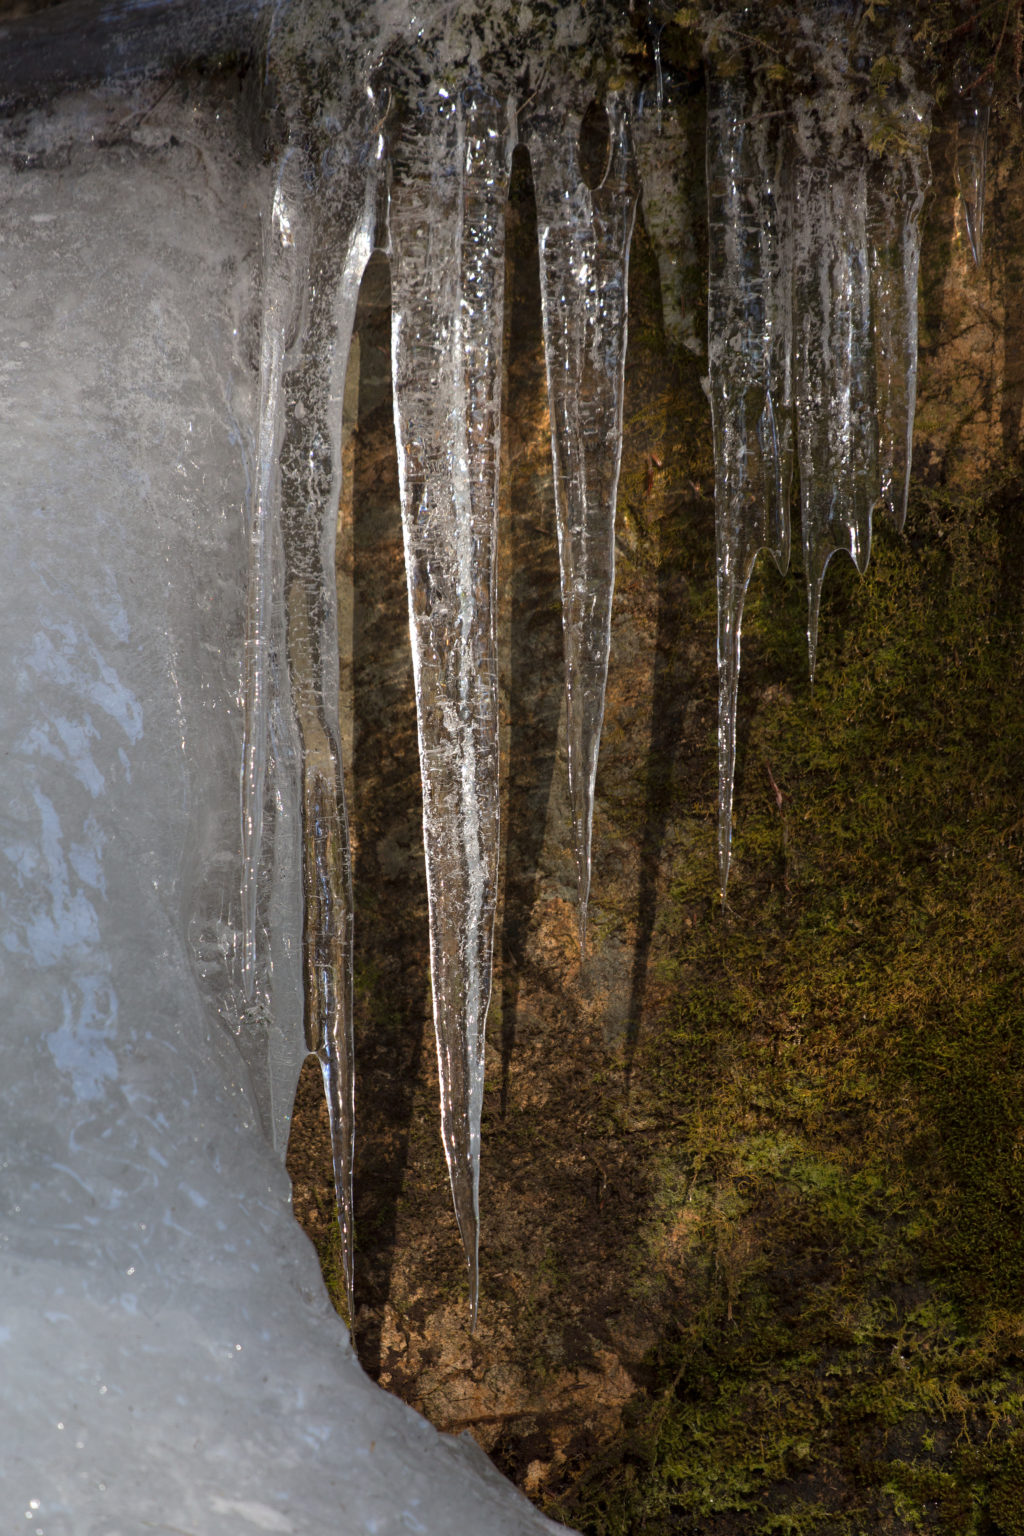 Descending Icicles